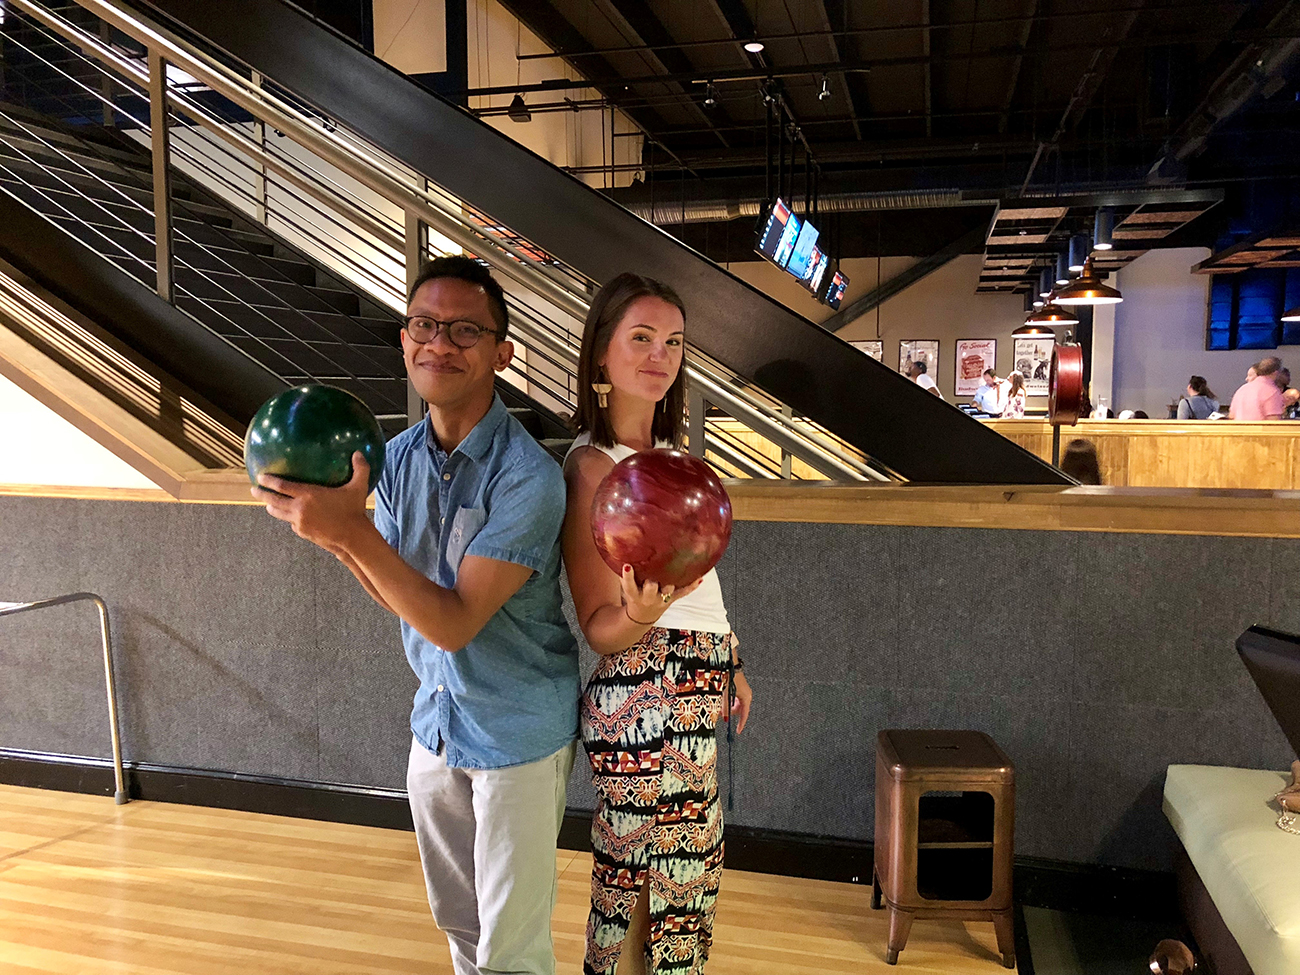 Blind Date: Alison and Emmanuel, who moonlights as a low-key bowling pro